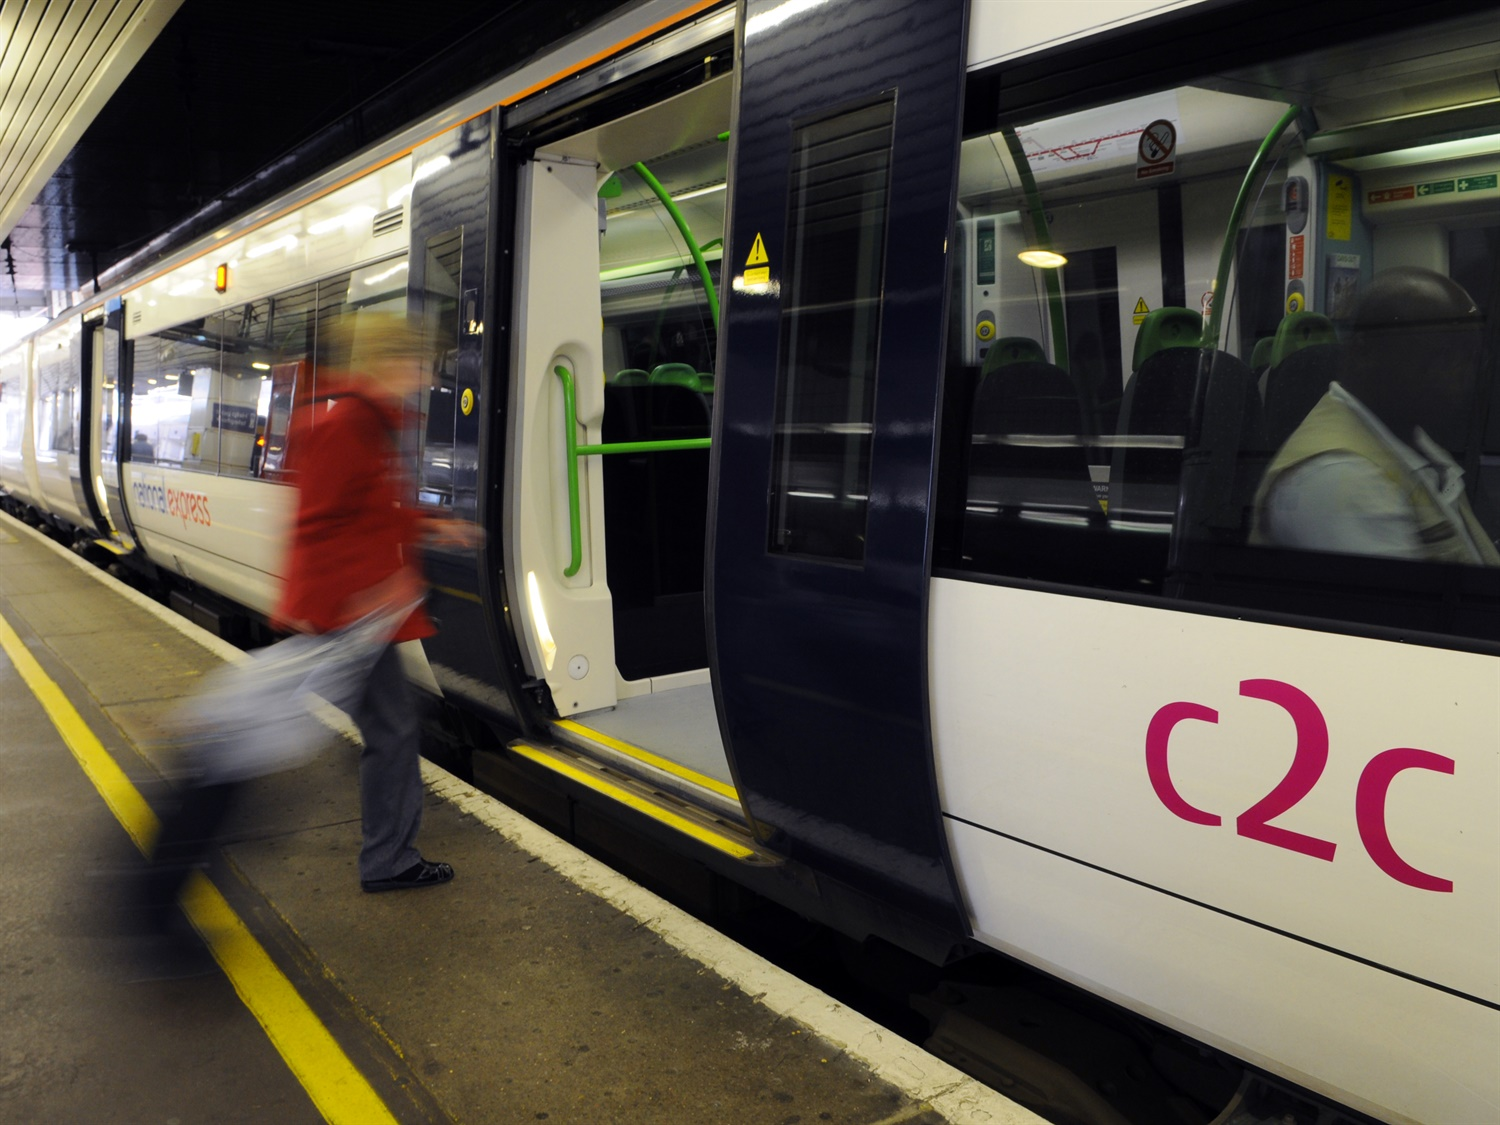 c2c reveals 2017 timetable as new Class 387 enters service